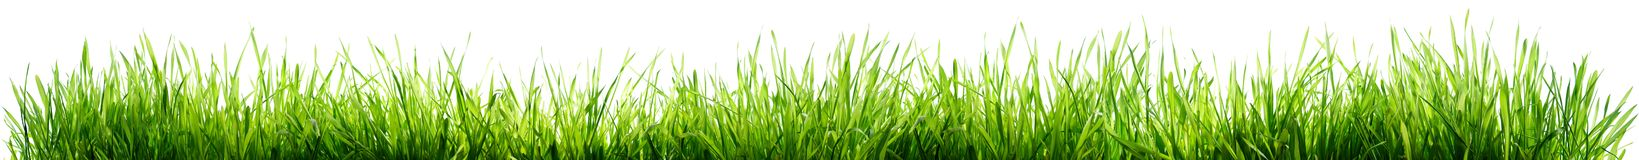 Grass Isolated On White Stock Image